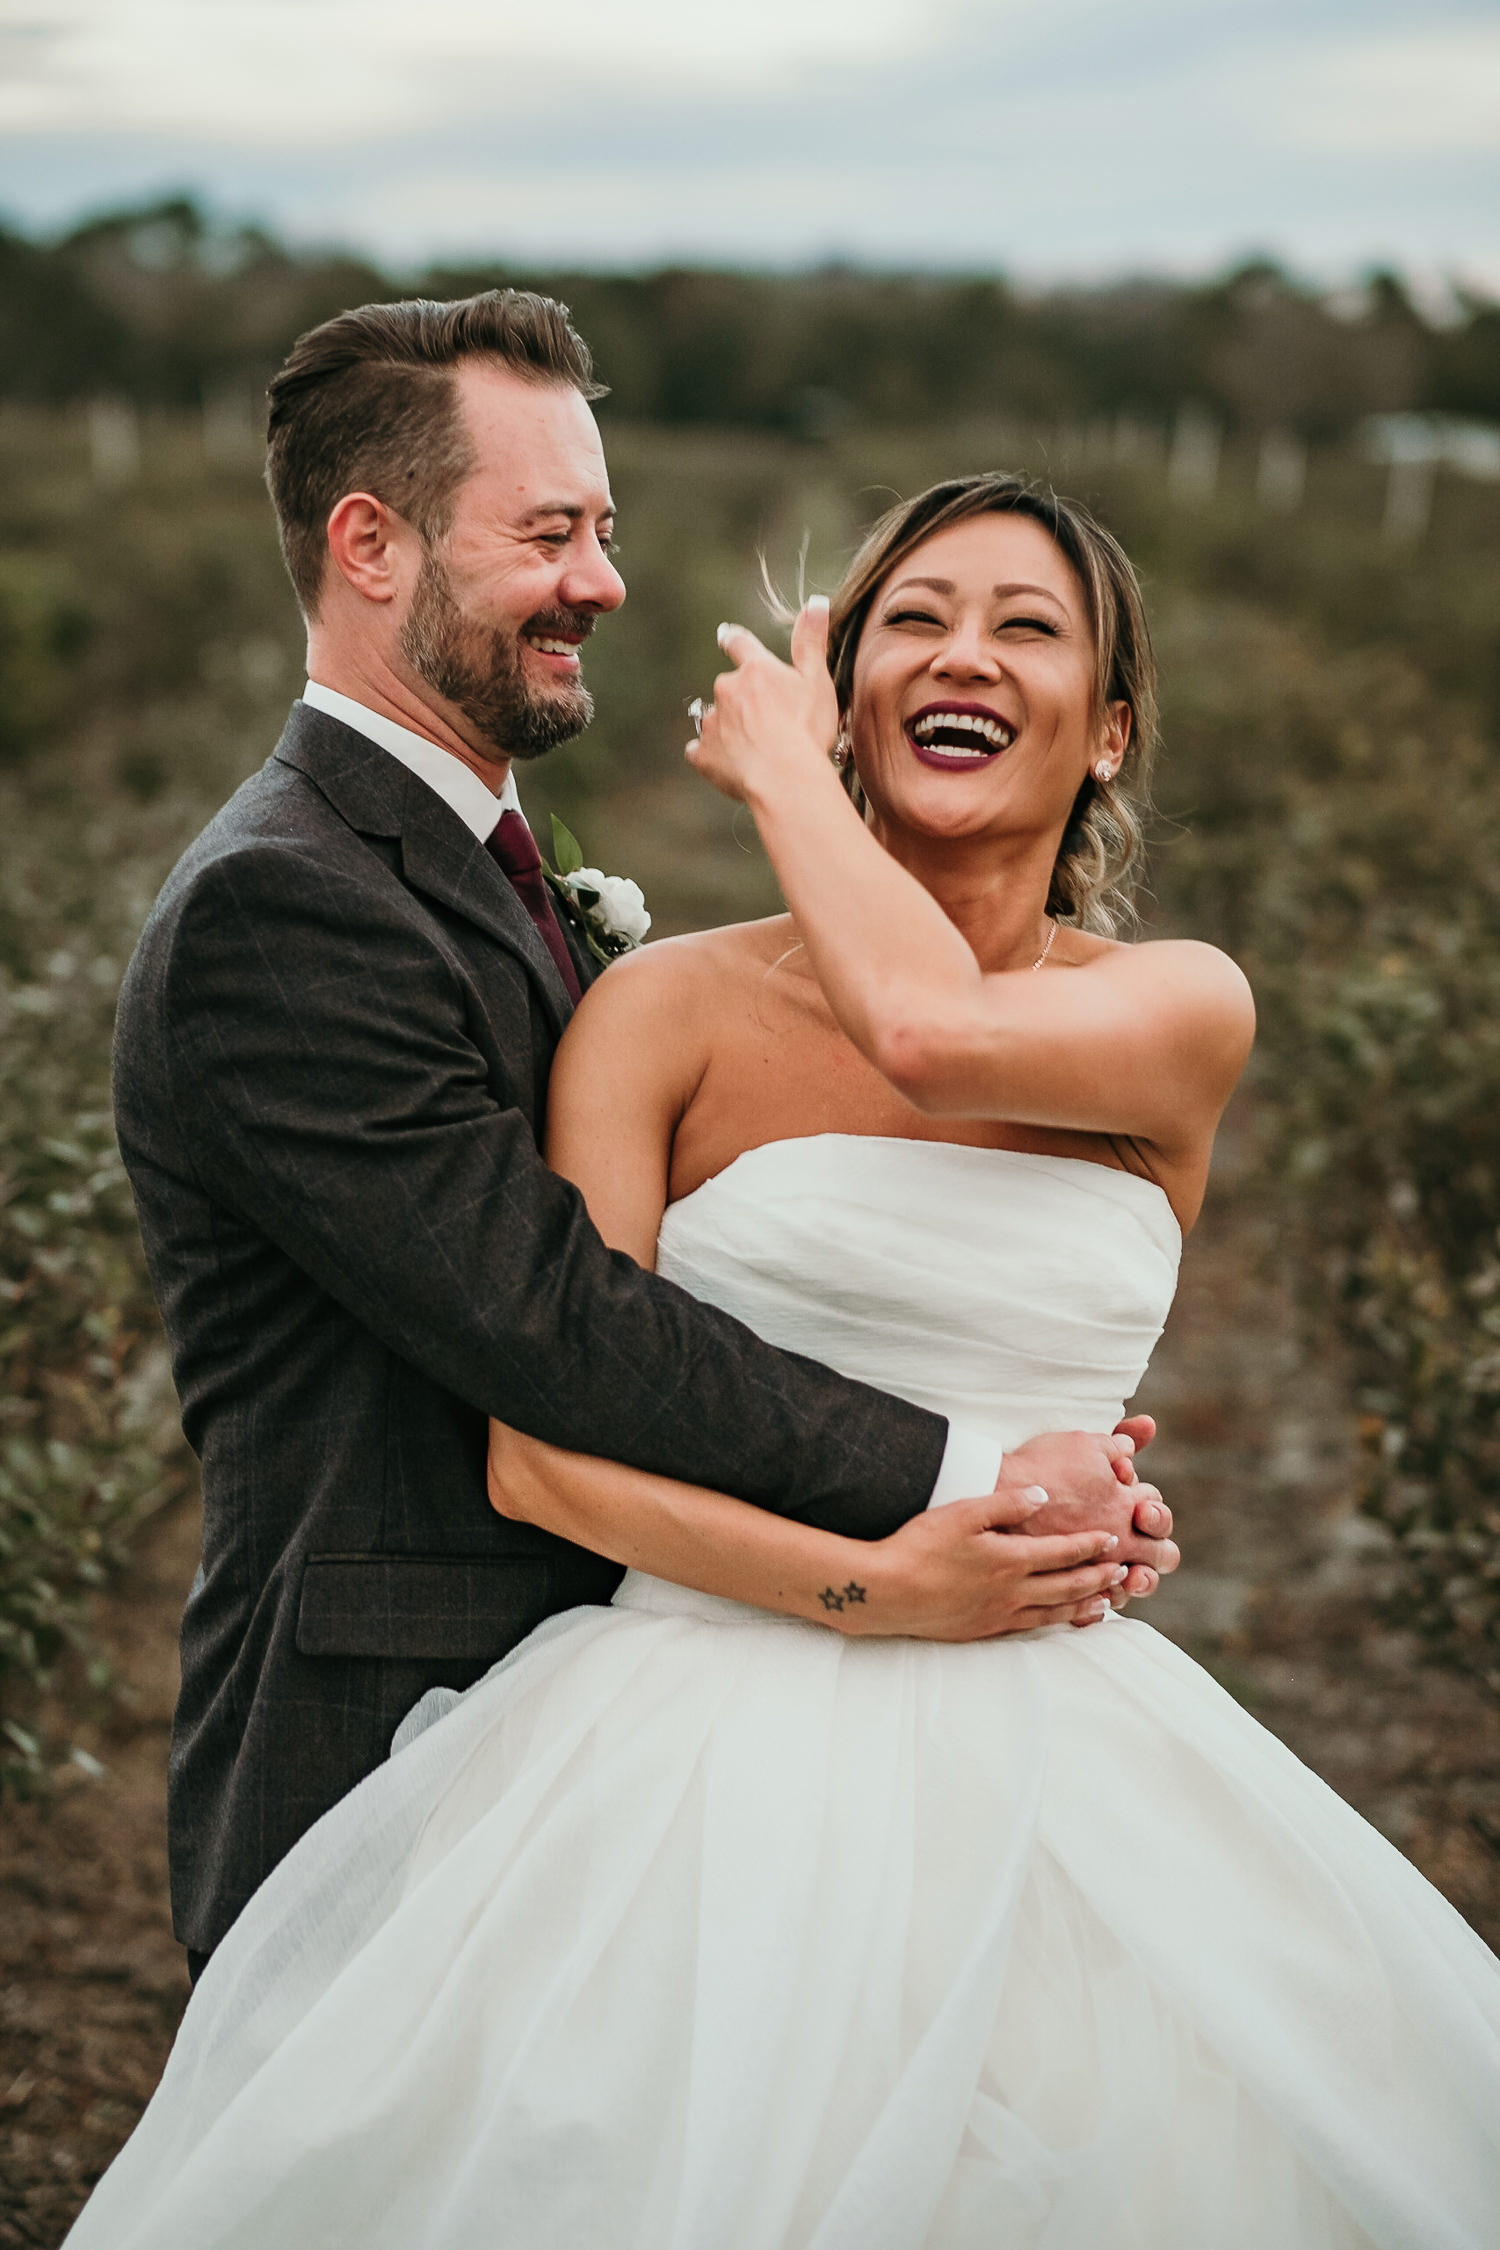 close up of newlyweds in middle of a field with bride laughing hard